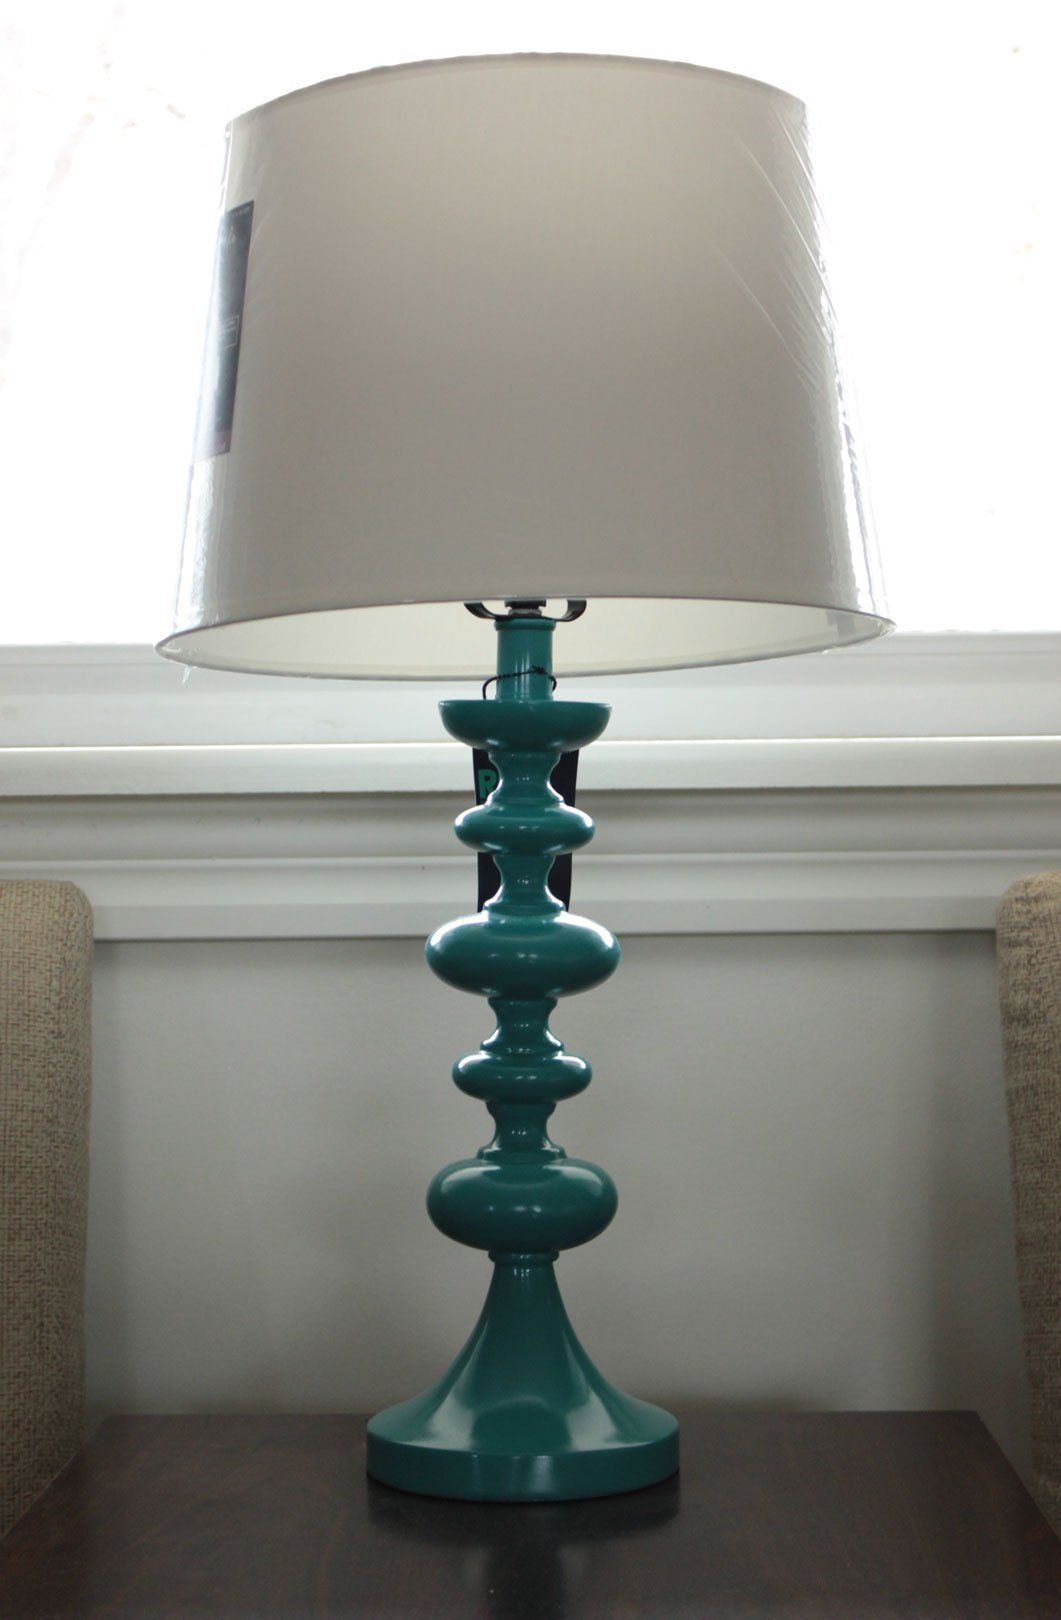 Teal Table Lamps Table Lamps Living Room Table Decor Living Room Living Room Table